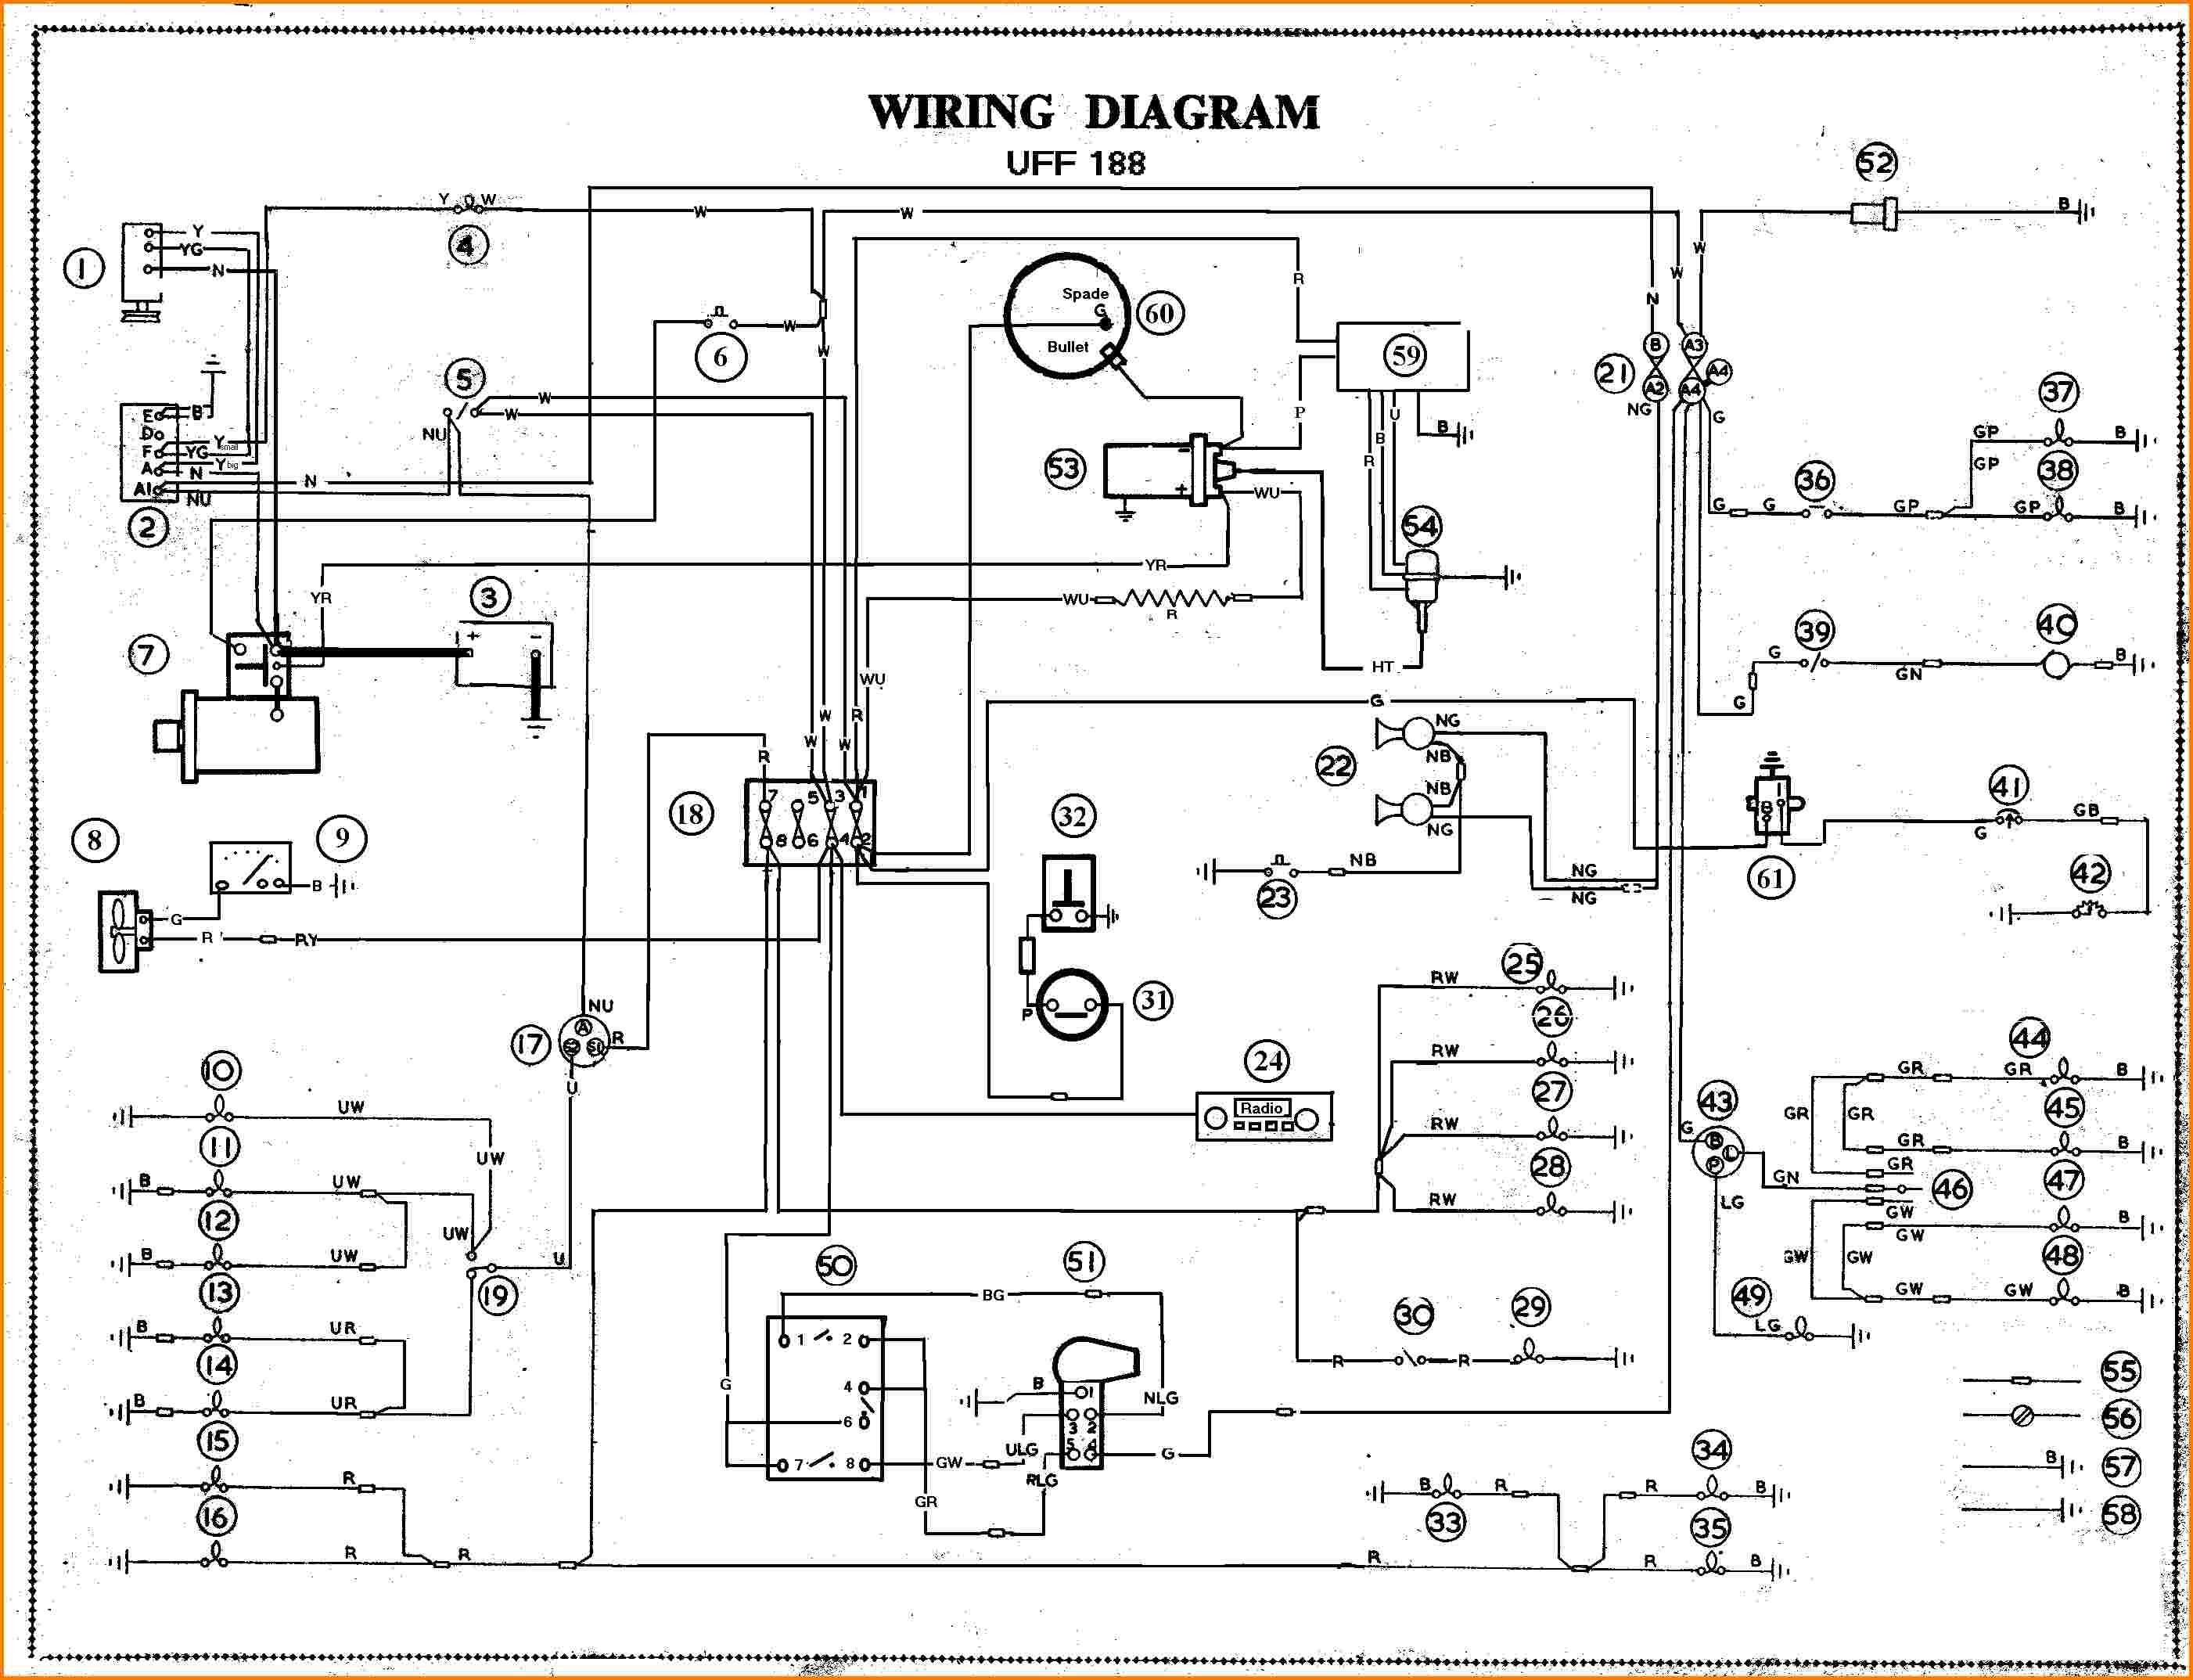 1979 mgb wiring diagram free picture schematic electrical work rh wiringdiagramshop today Automotive Wiring Diagrams Residential Electrical Wiring Diagrams